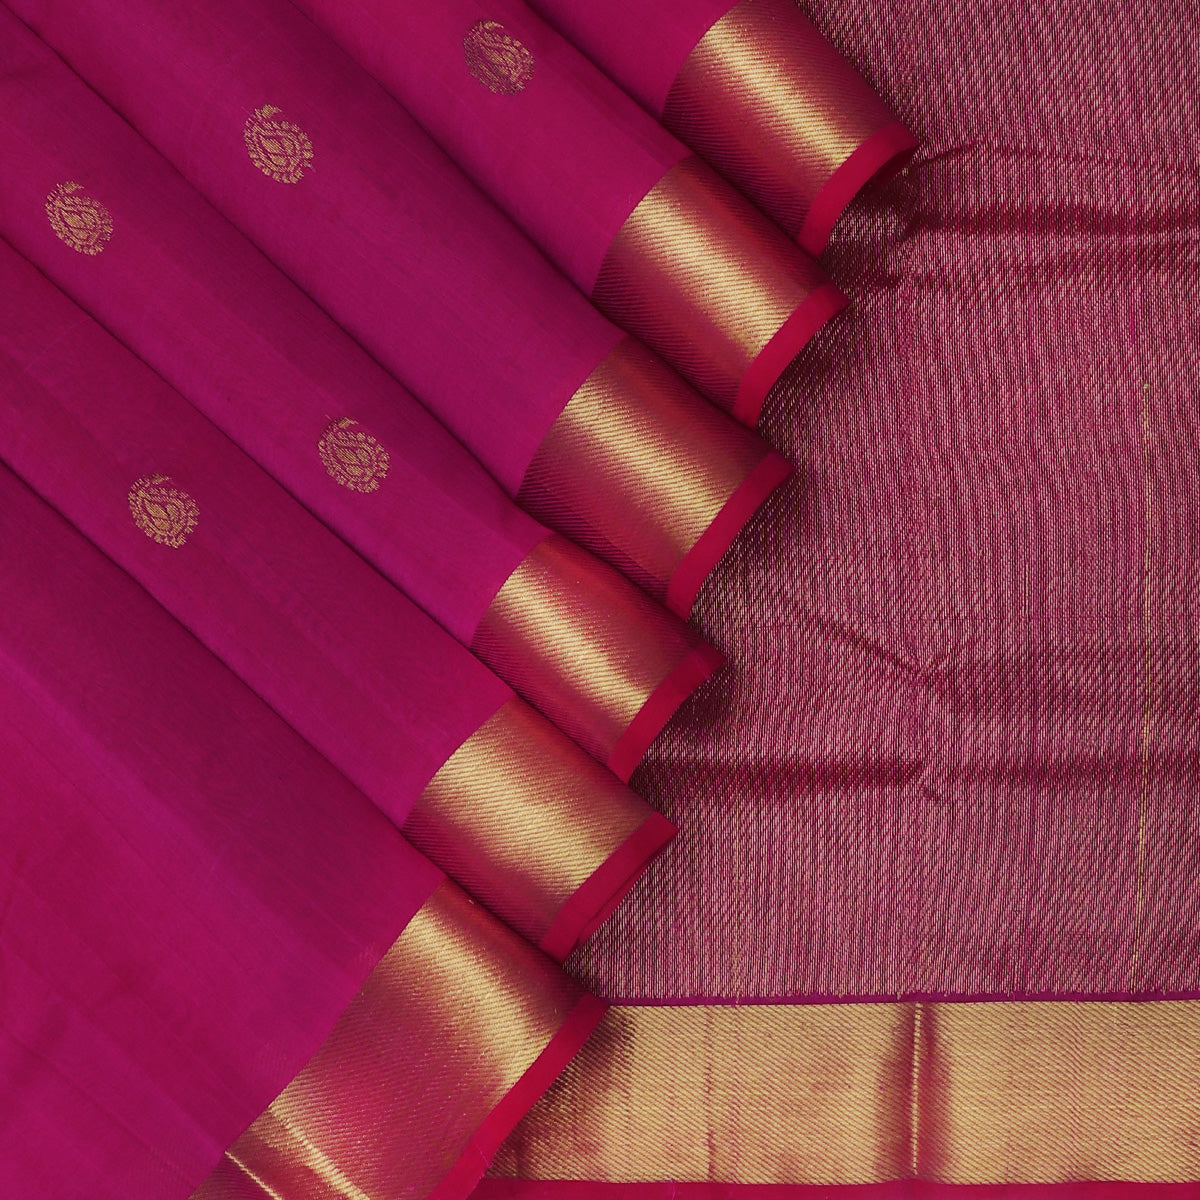 Silk Cotton Saree-Pink with Buttas Simple Zari border